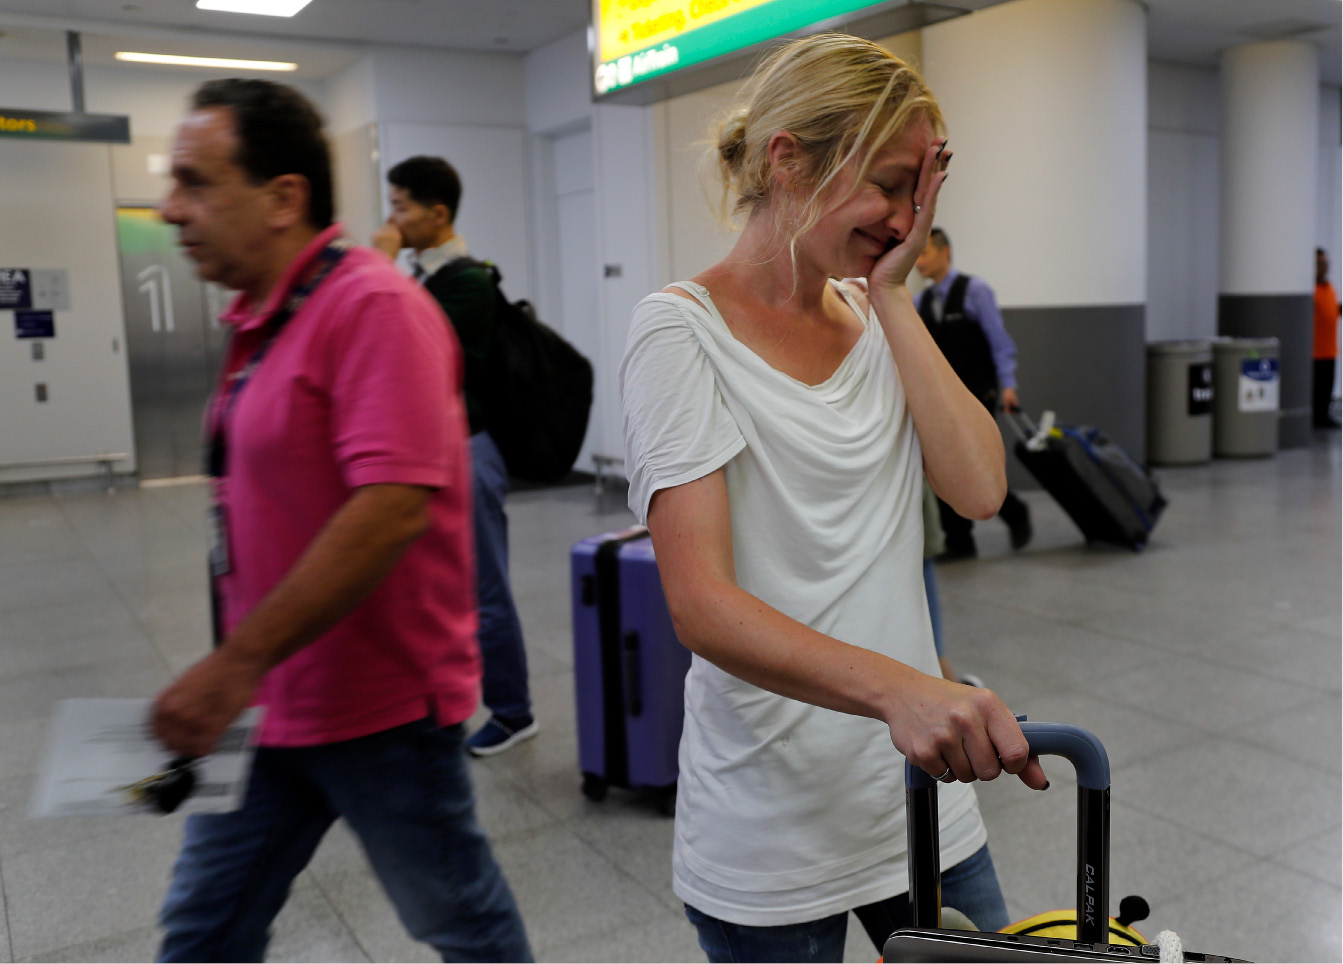 Cori Rojas, a school teacher from Puerto Rico, reacts after arriving at JFK airport with her two children, Tuesday, Sept. 26, 2017 in New York. Rojas and her children fled Puerto Rico after Hurricane Maria devastated the island and will stay with her in-laws in Queens. Her husband, who works for a global insurance firm, opted to stay behind. (AP Photo/Julie Jacobson)